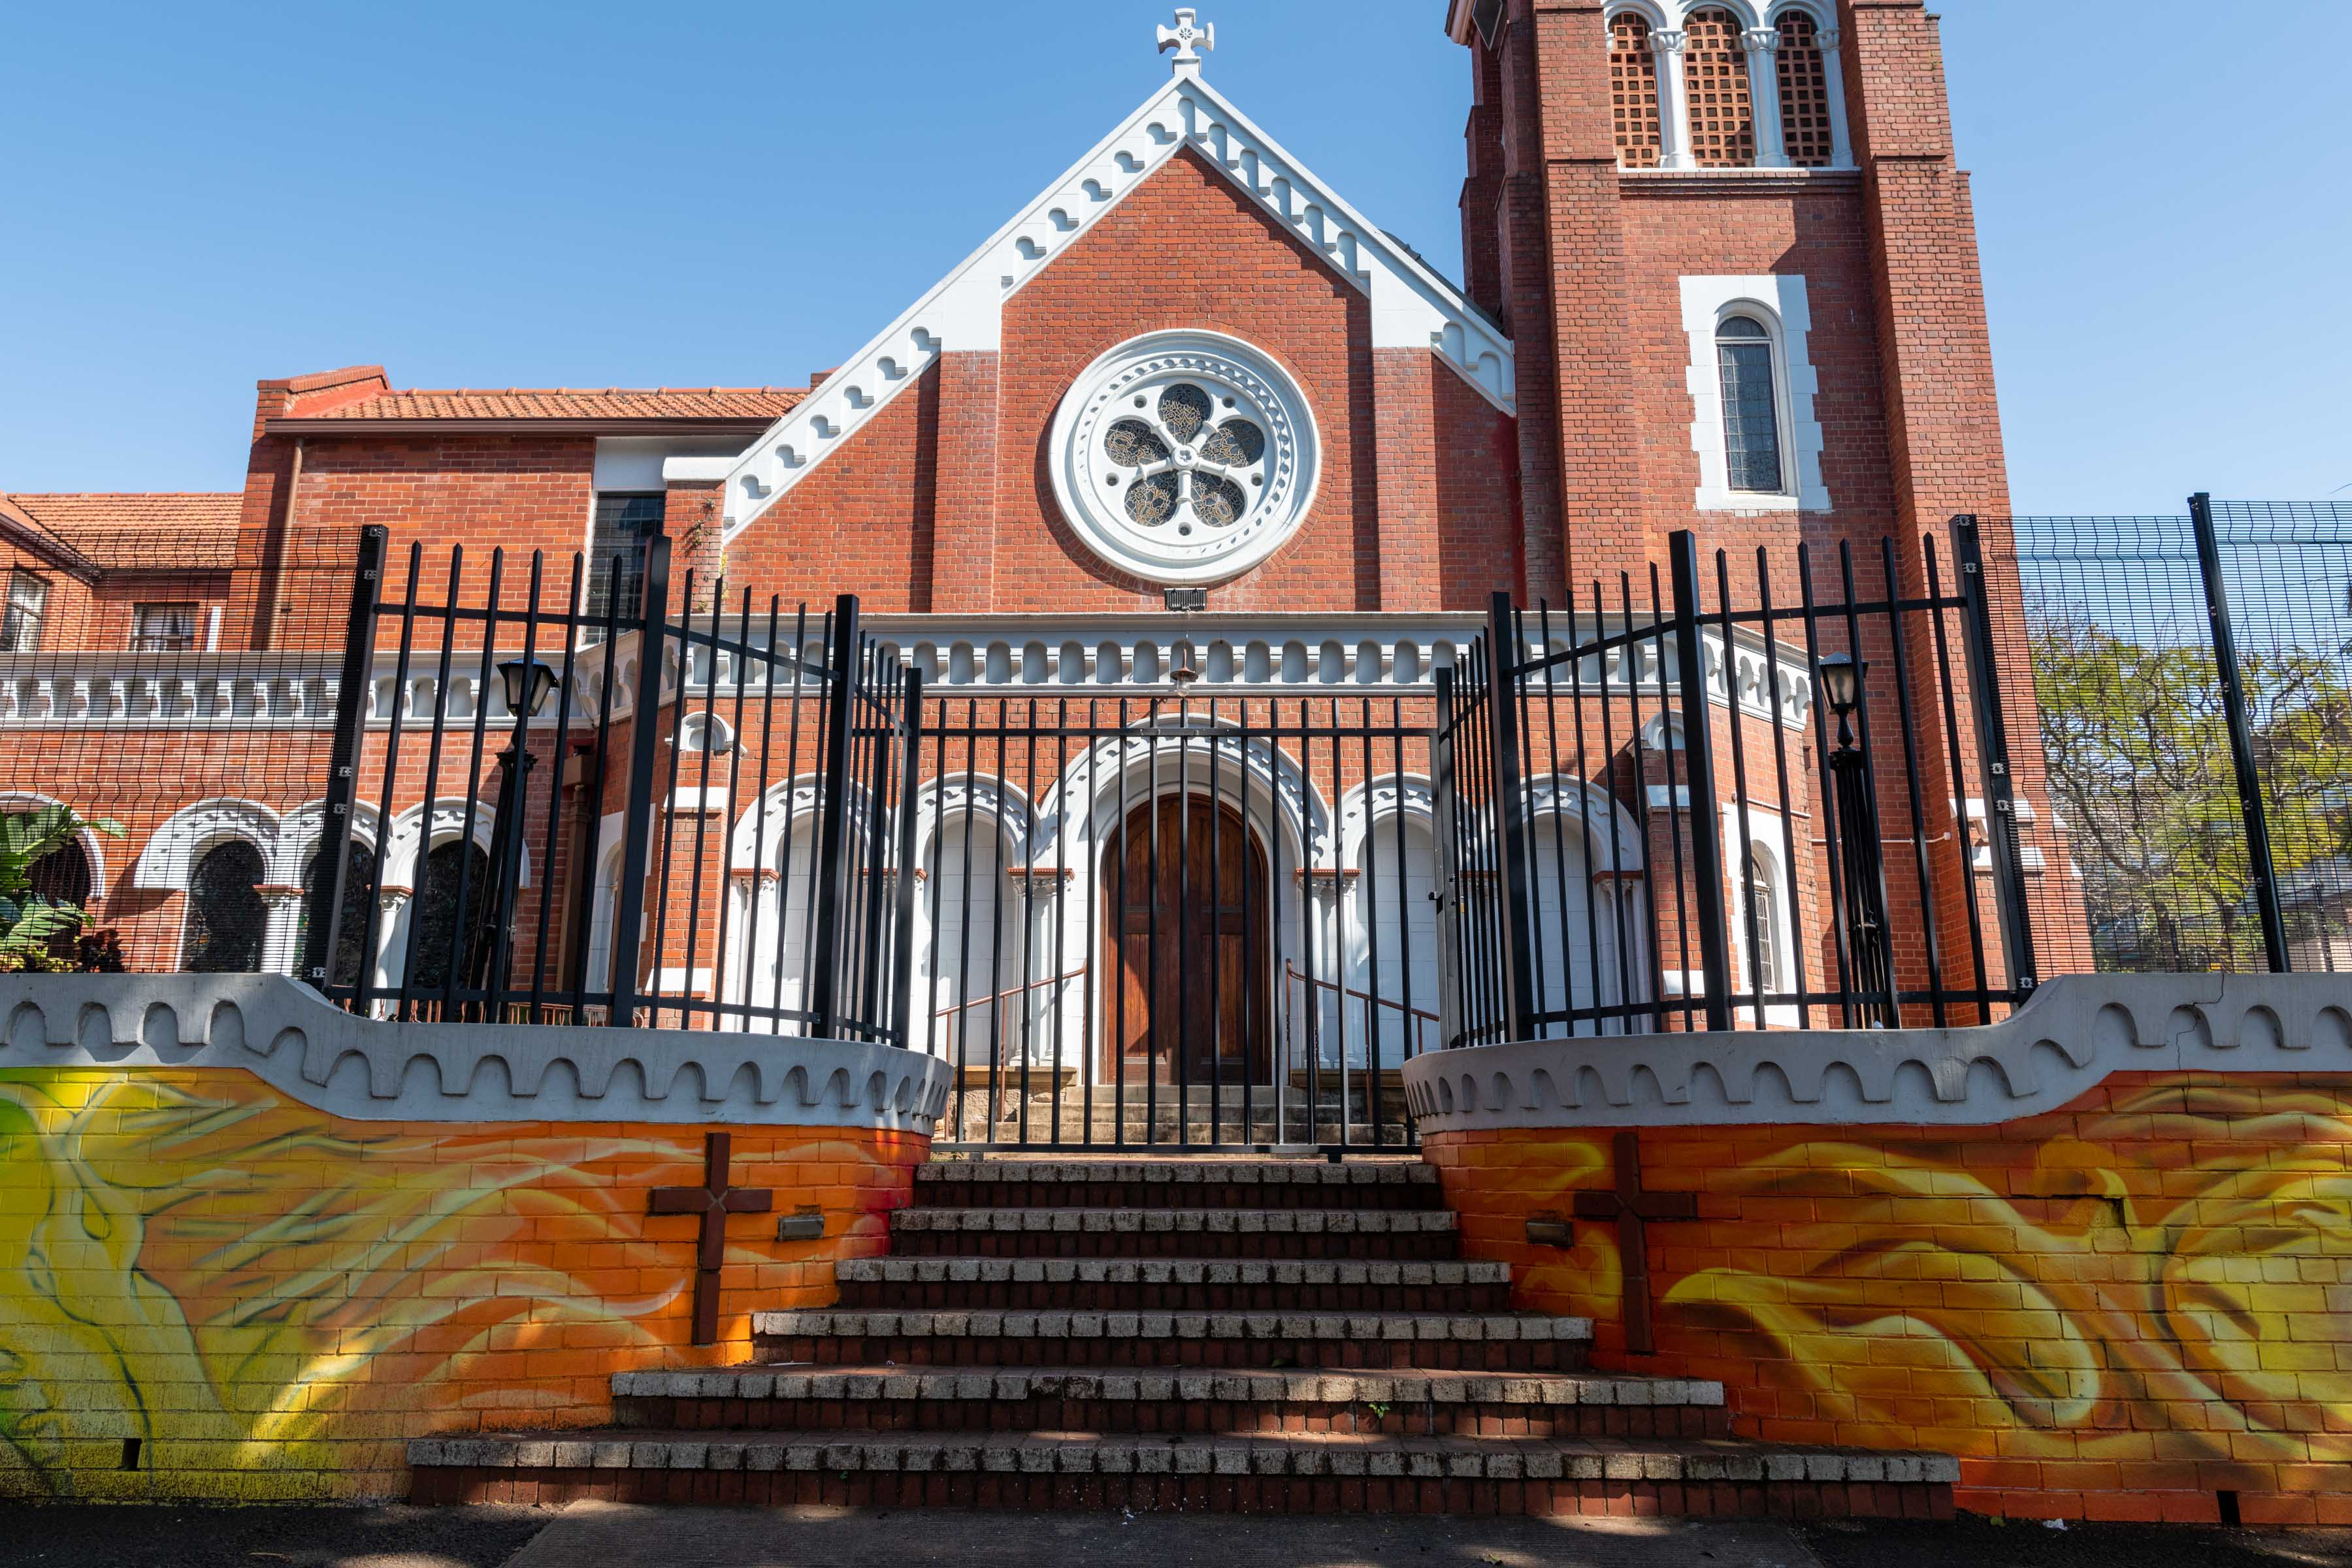 11 September 2019: The Manning Road Methodist Church in Durban, whose minister the Reverend Lauren Matthew has been criticised for commissioning a mural depicting the climate emergency to be painted on its boundary wall.